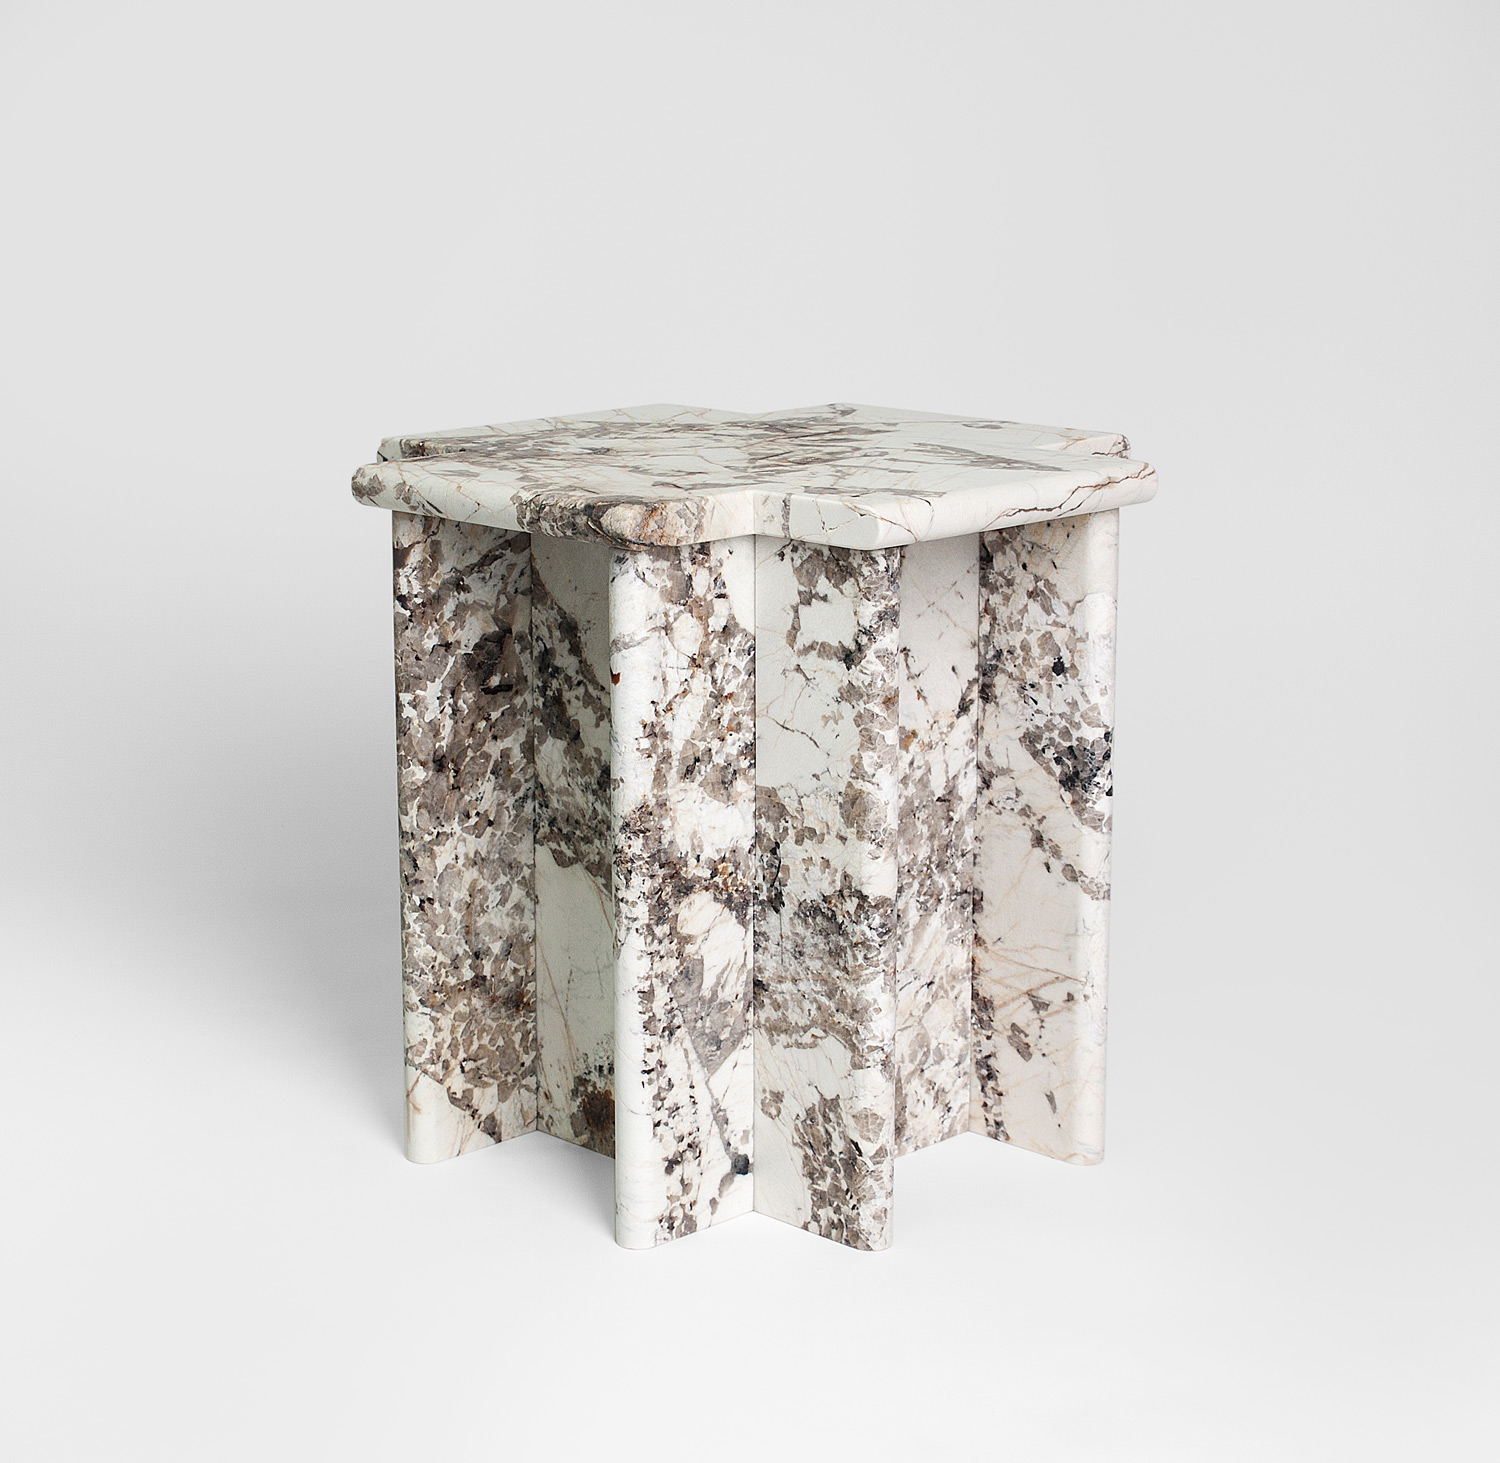 Table Metal Blanc Ziggurat Side Table Blanc Du Blanc Granite Christopher Stuart